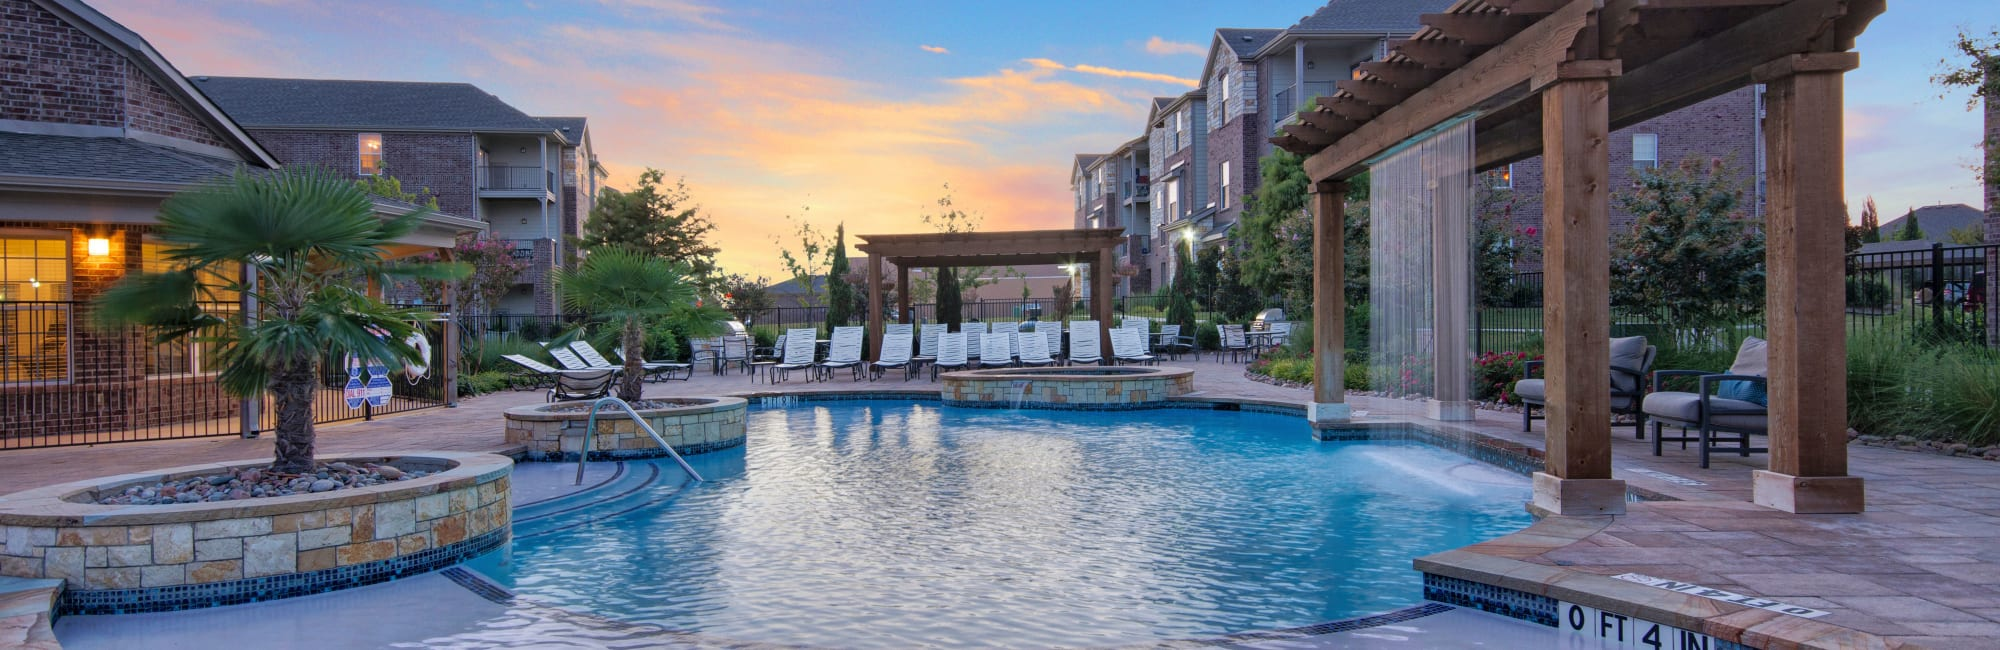 Apartments at Creekside South in Wylie, Texas